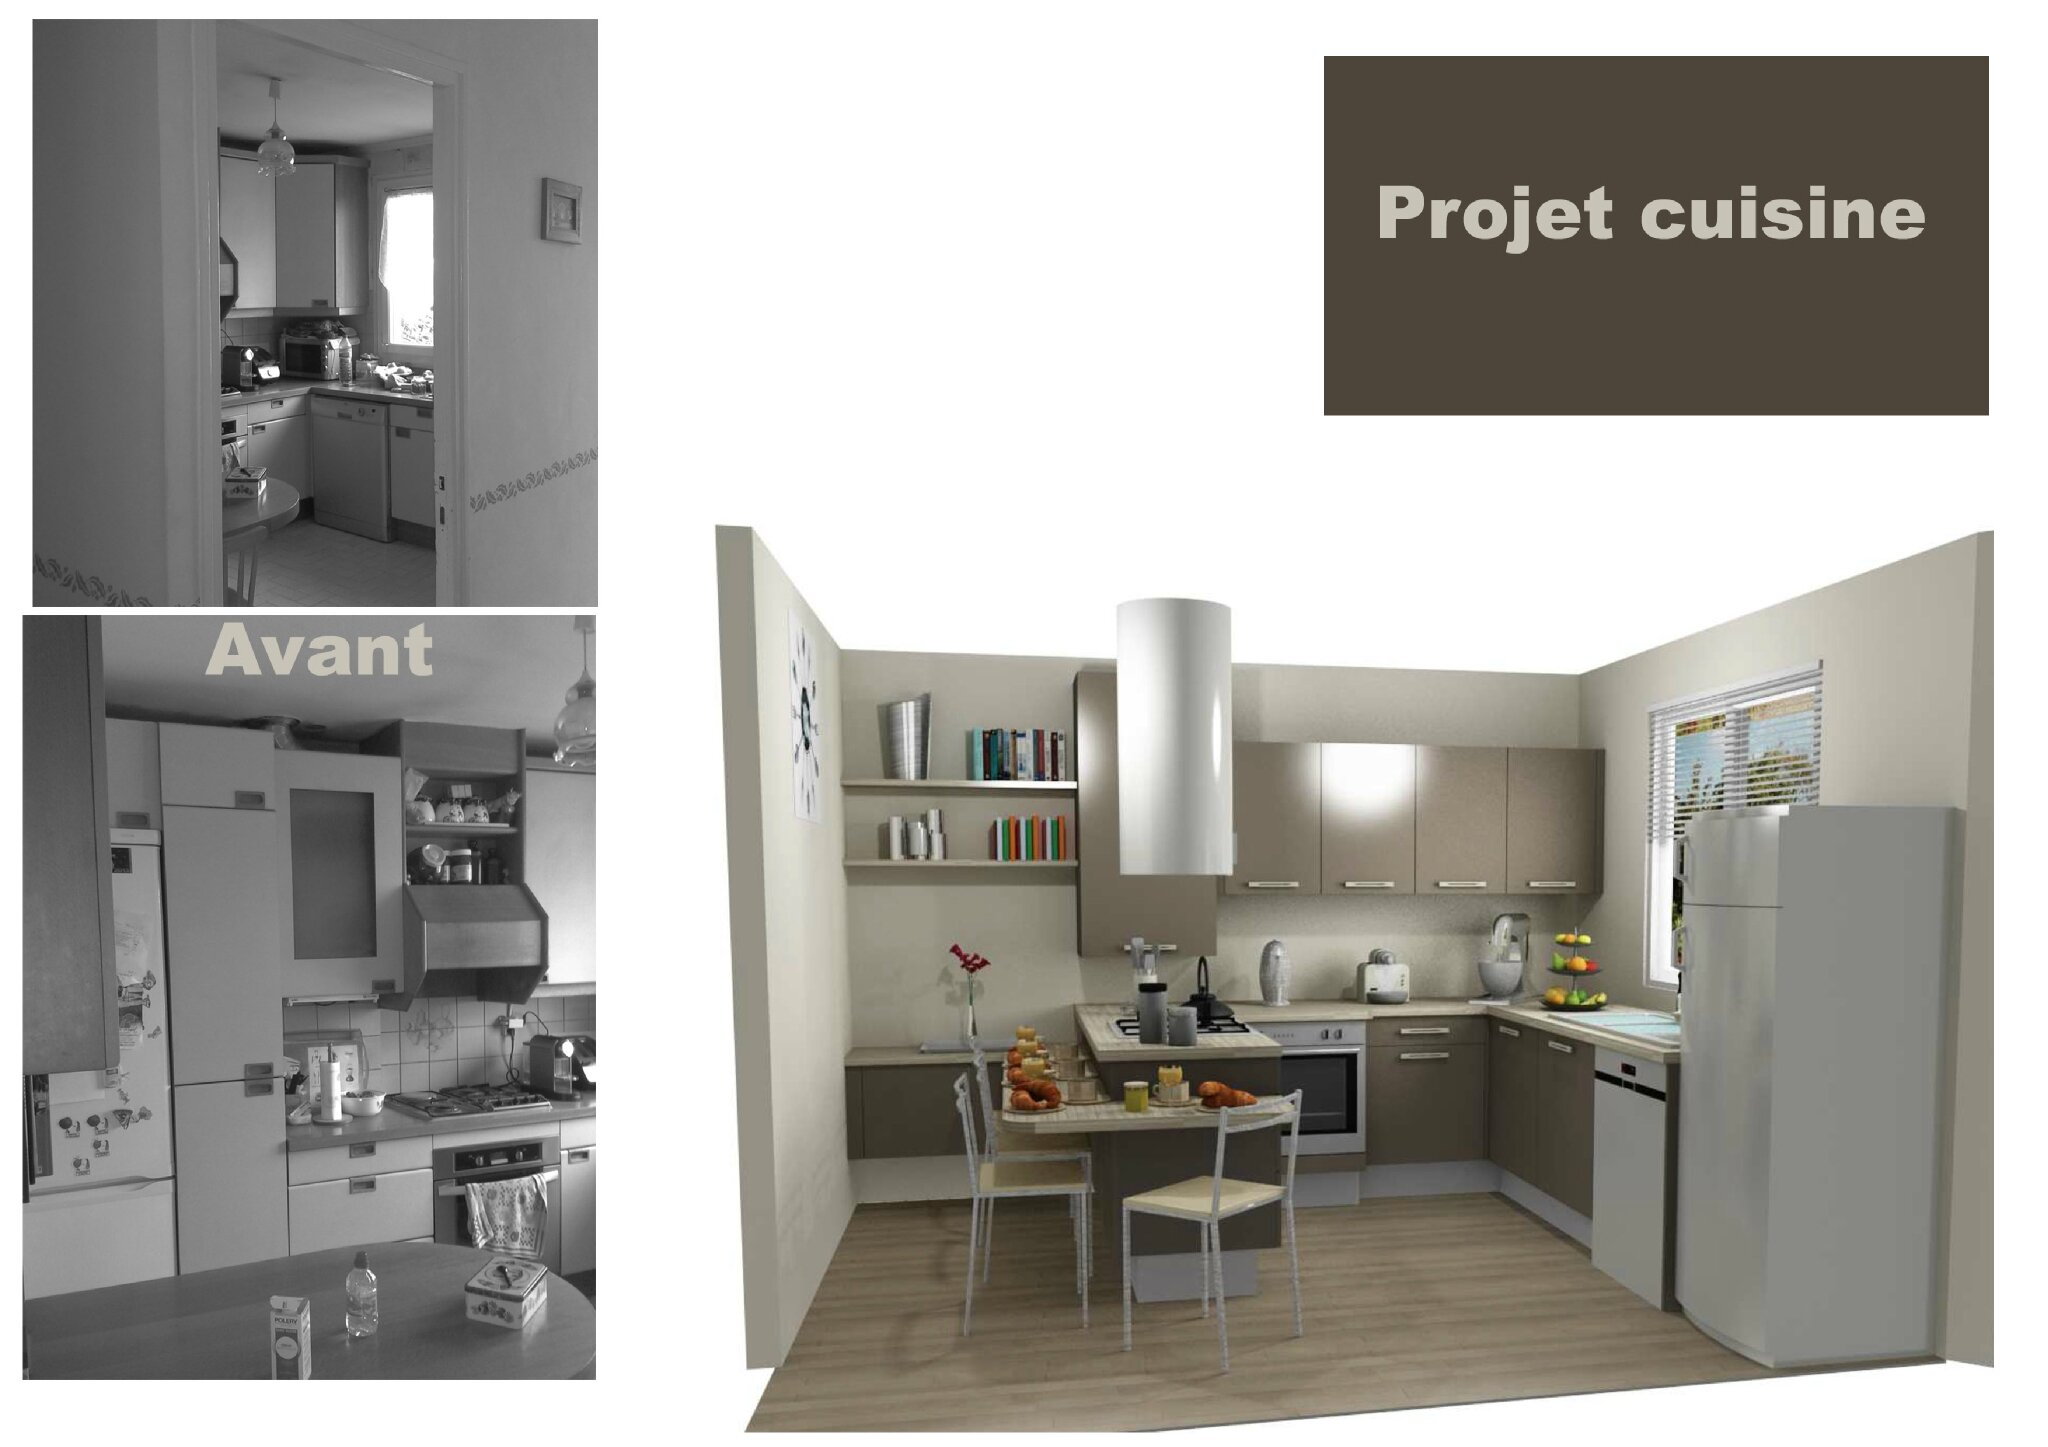 Cuisine projet 95 am lie pell architecte d 39 int rieur for Architecte d interieur 95